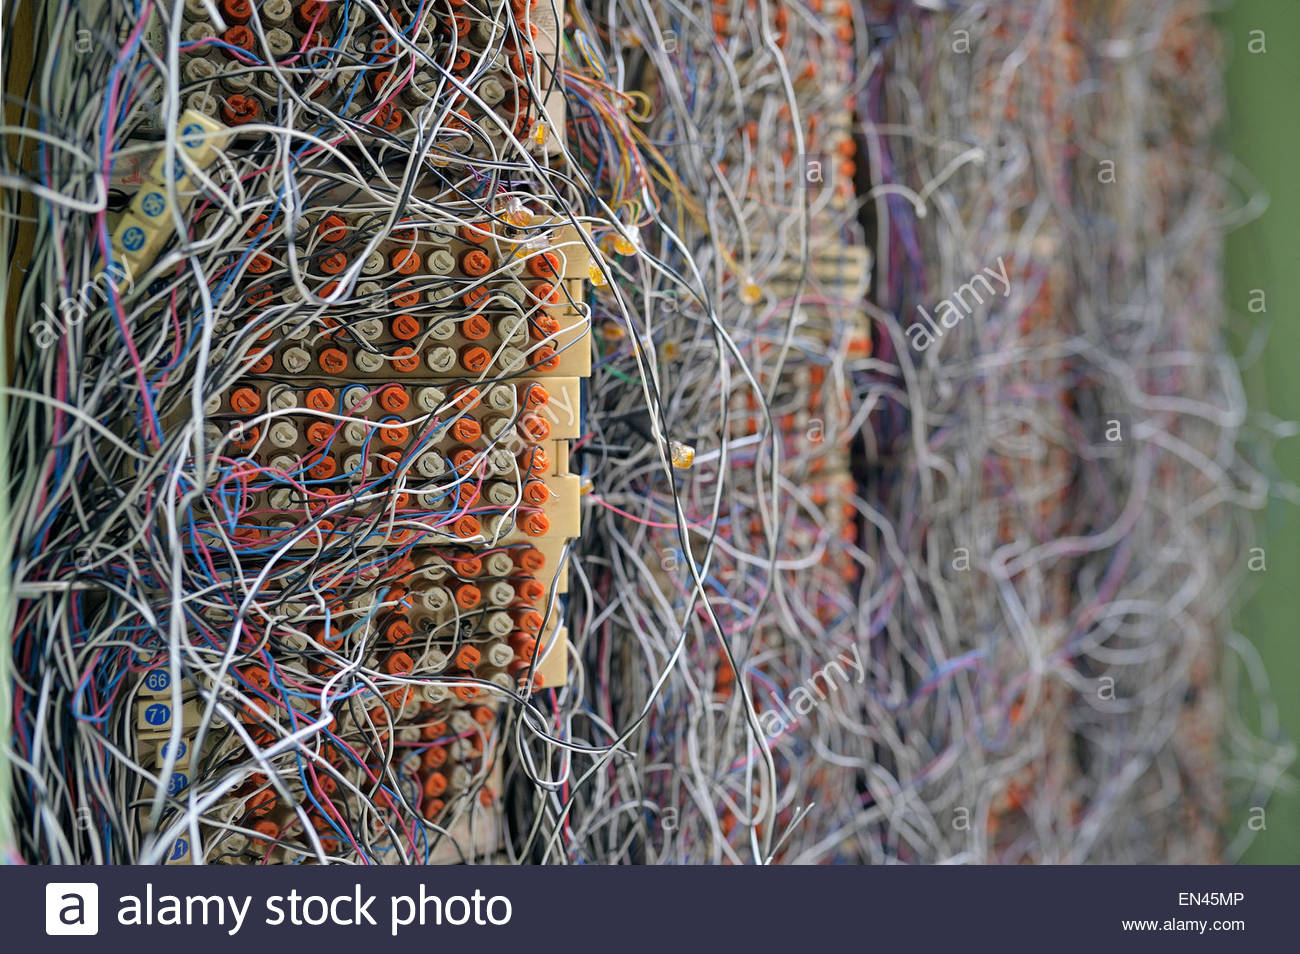 Chaotic Mess Network Cables Tangled Stock Photos Messy Wiring Switchboard Panell With Connections Image